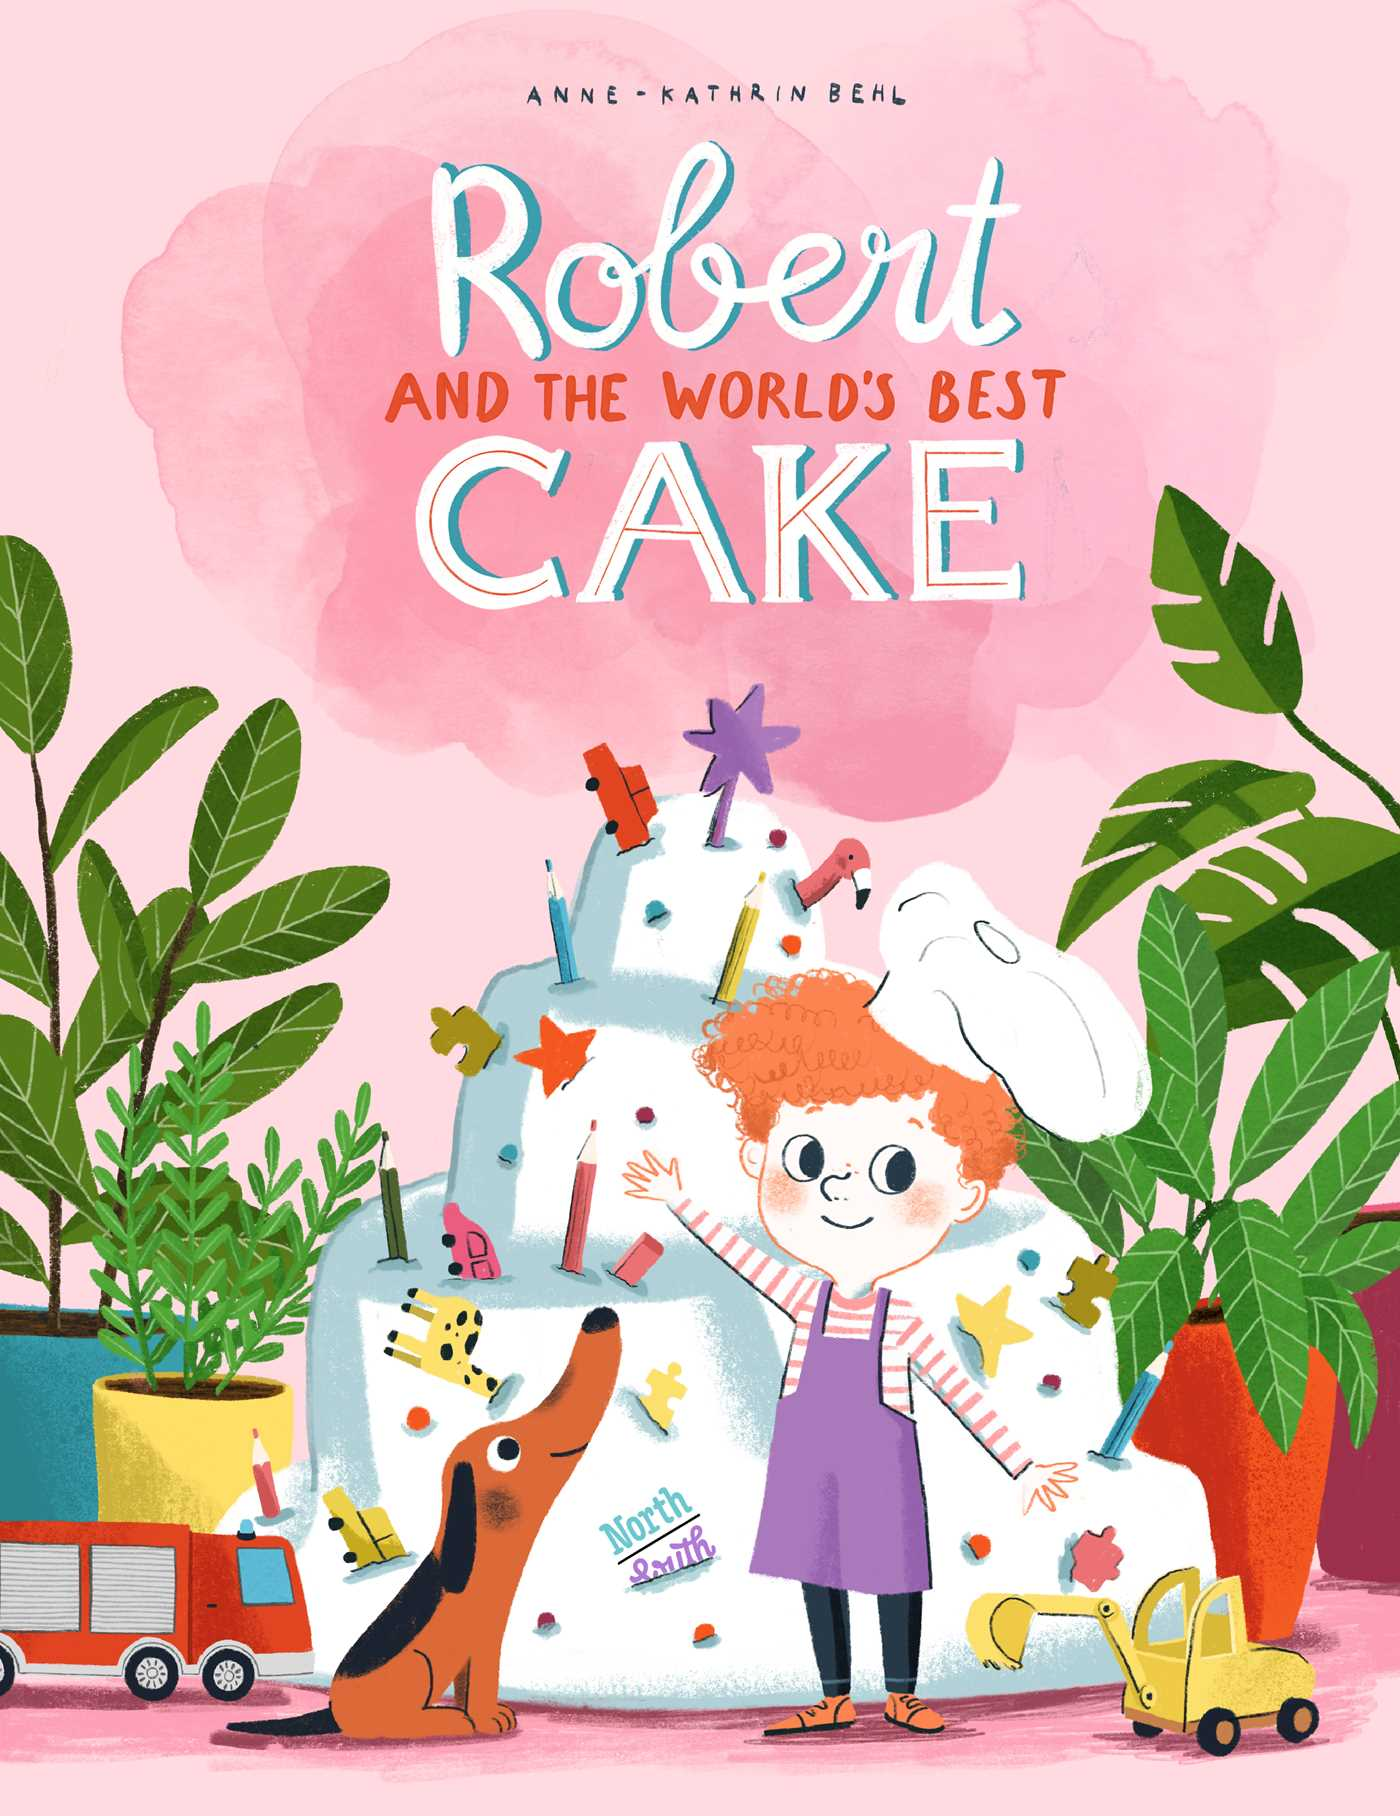 Robert and the World's Best Cake, Anne-Kathrin Behl, Pink, Plants, Boy, Dog, Cake, Toys, Picture Book, Children's Books, Family, Dog, Pets, Friends